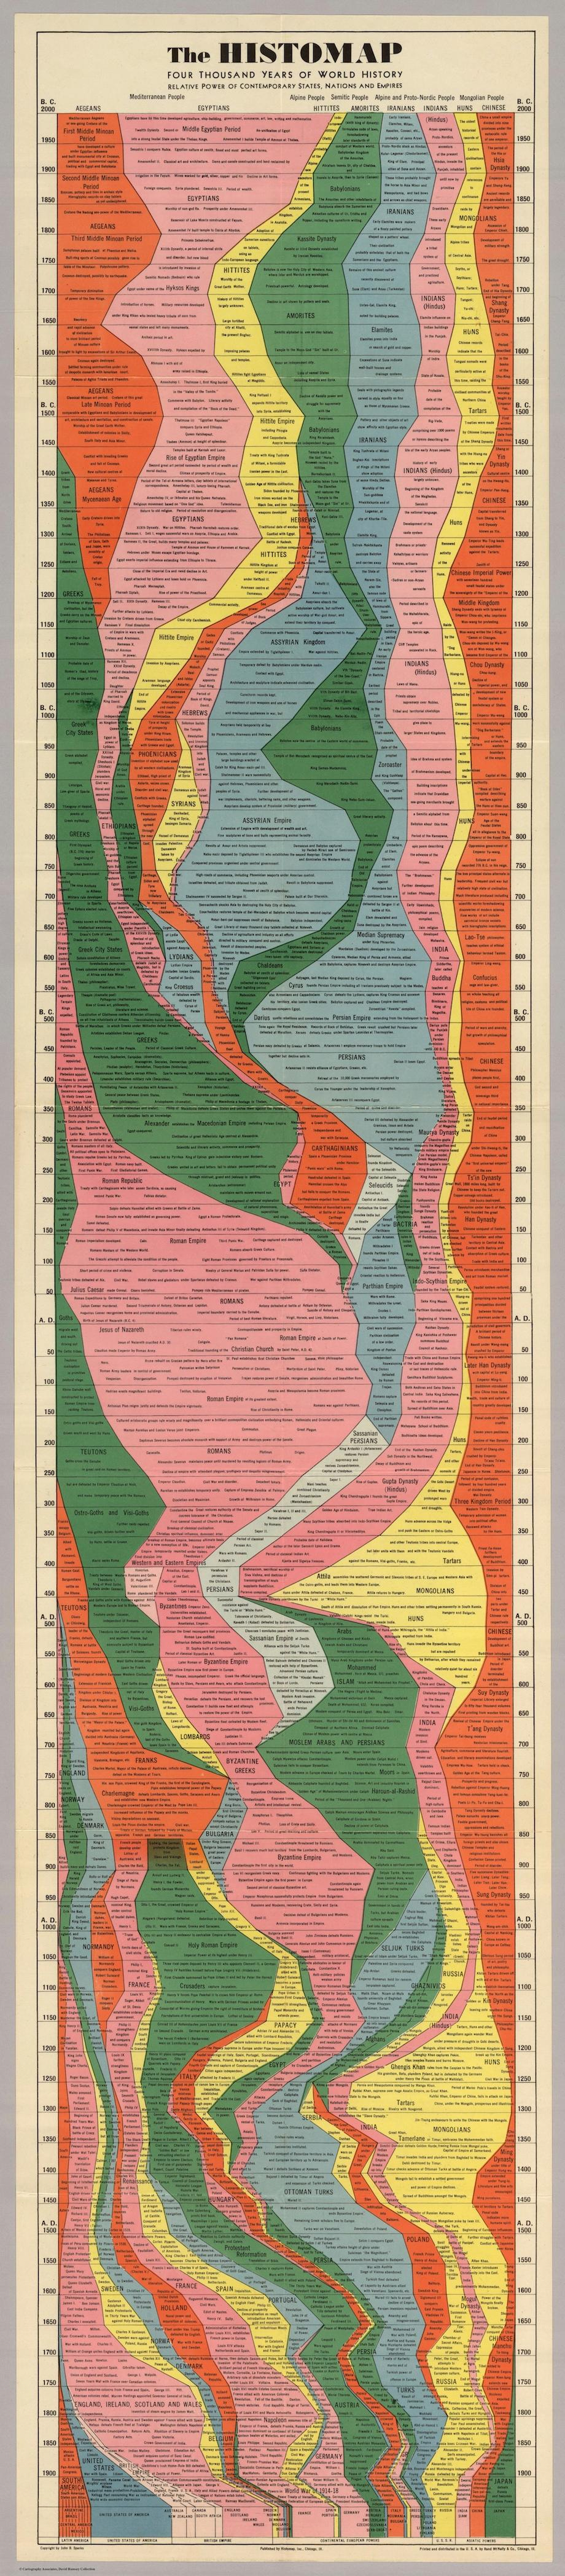 John B. Sparks, Histomap. 1931. David Rumsey Historical Map Collection.